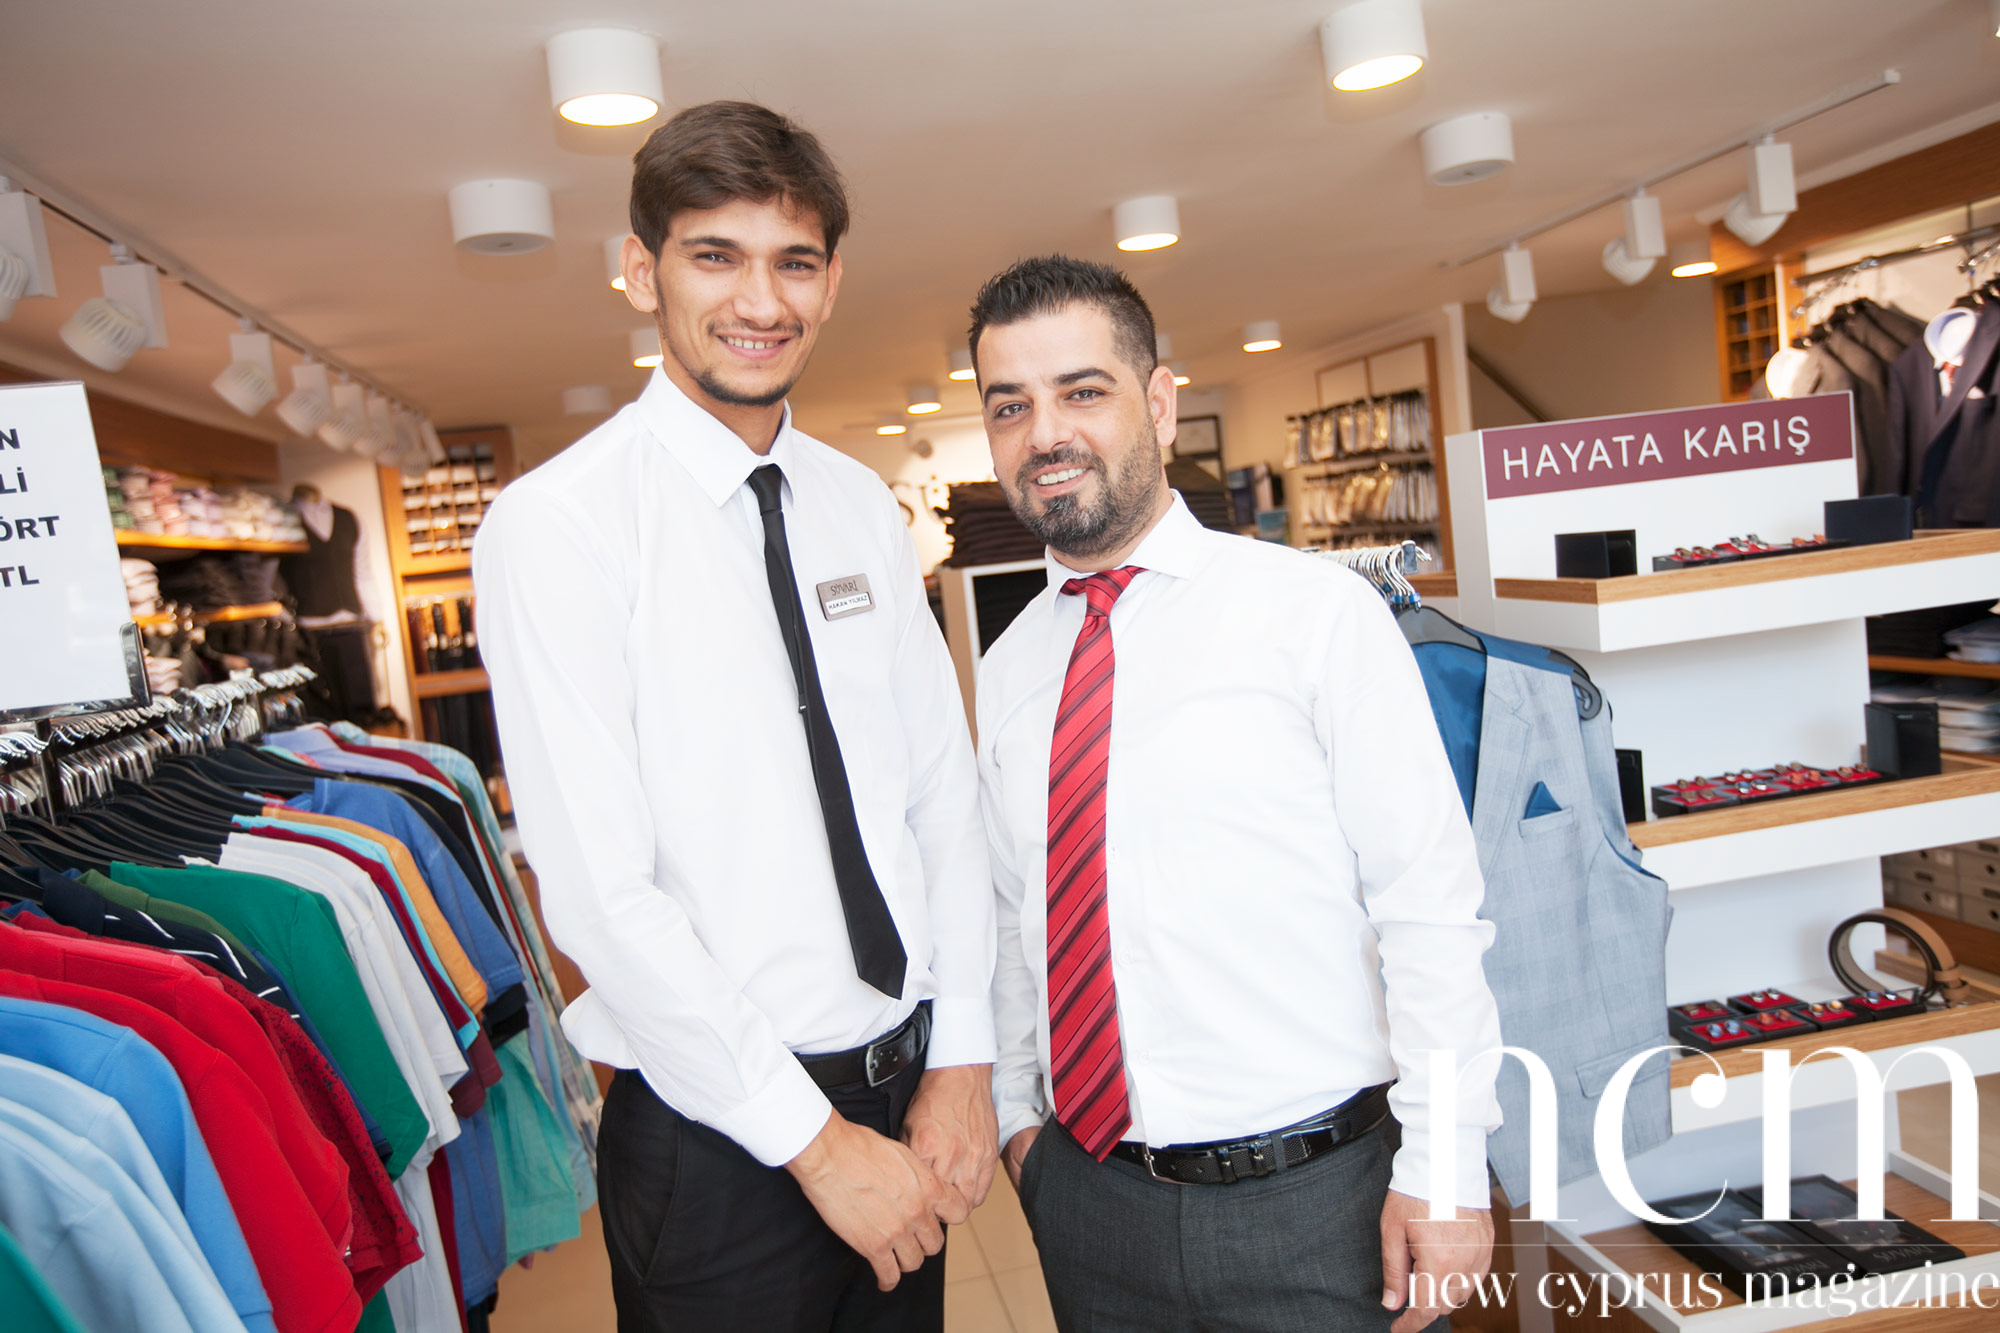 Süvari gentlemen cloths and suits in Kyrenia and Nicosia